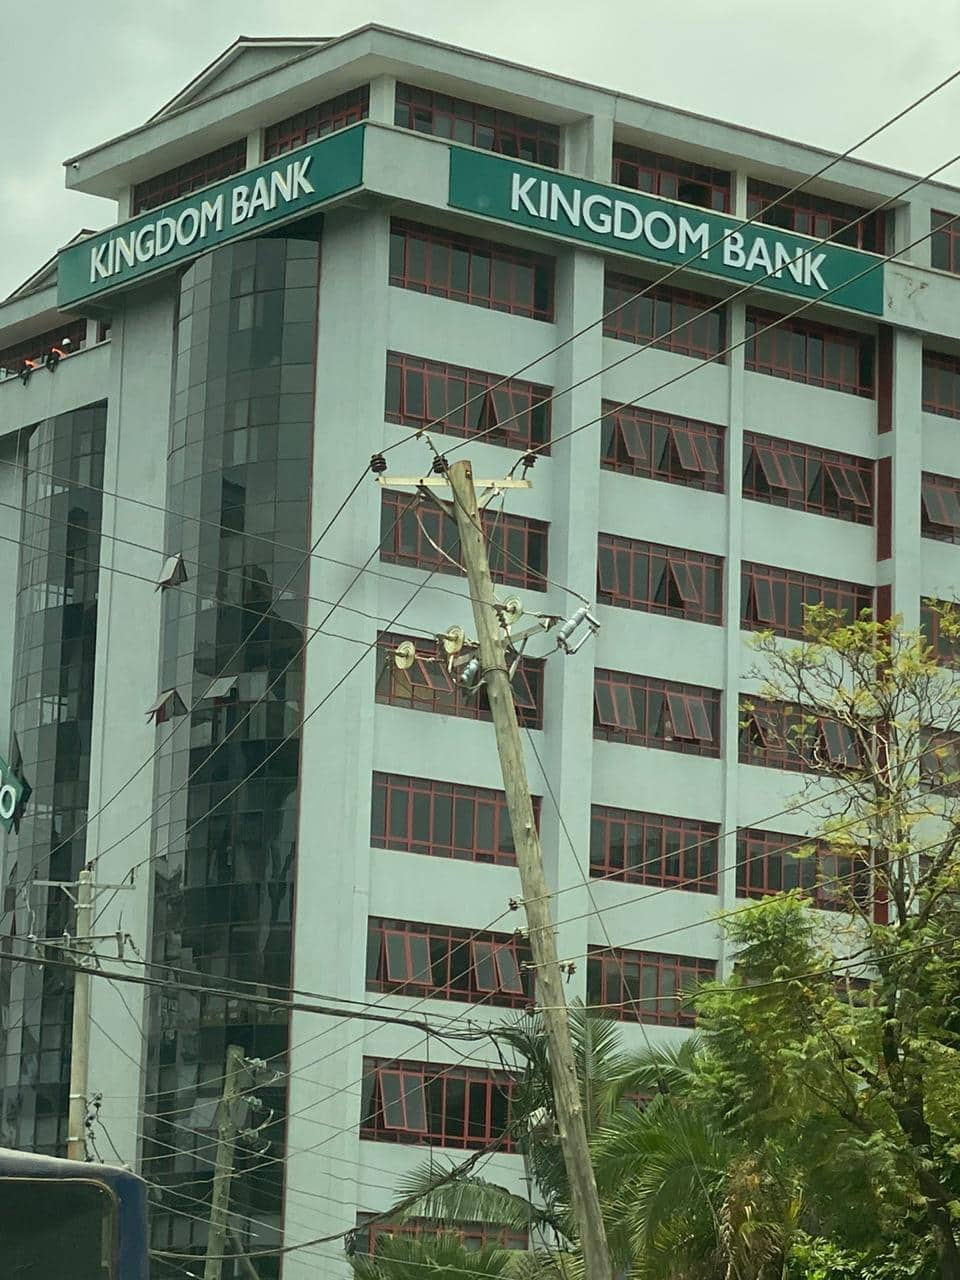 Jamii Bora Bank rebranded to Kingdom Bank after 90% stake takeover by Co-op Bank